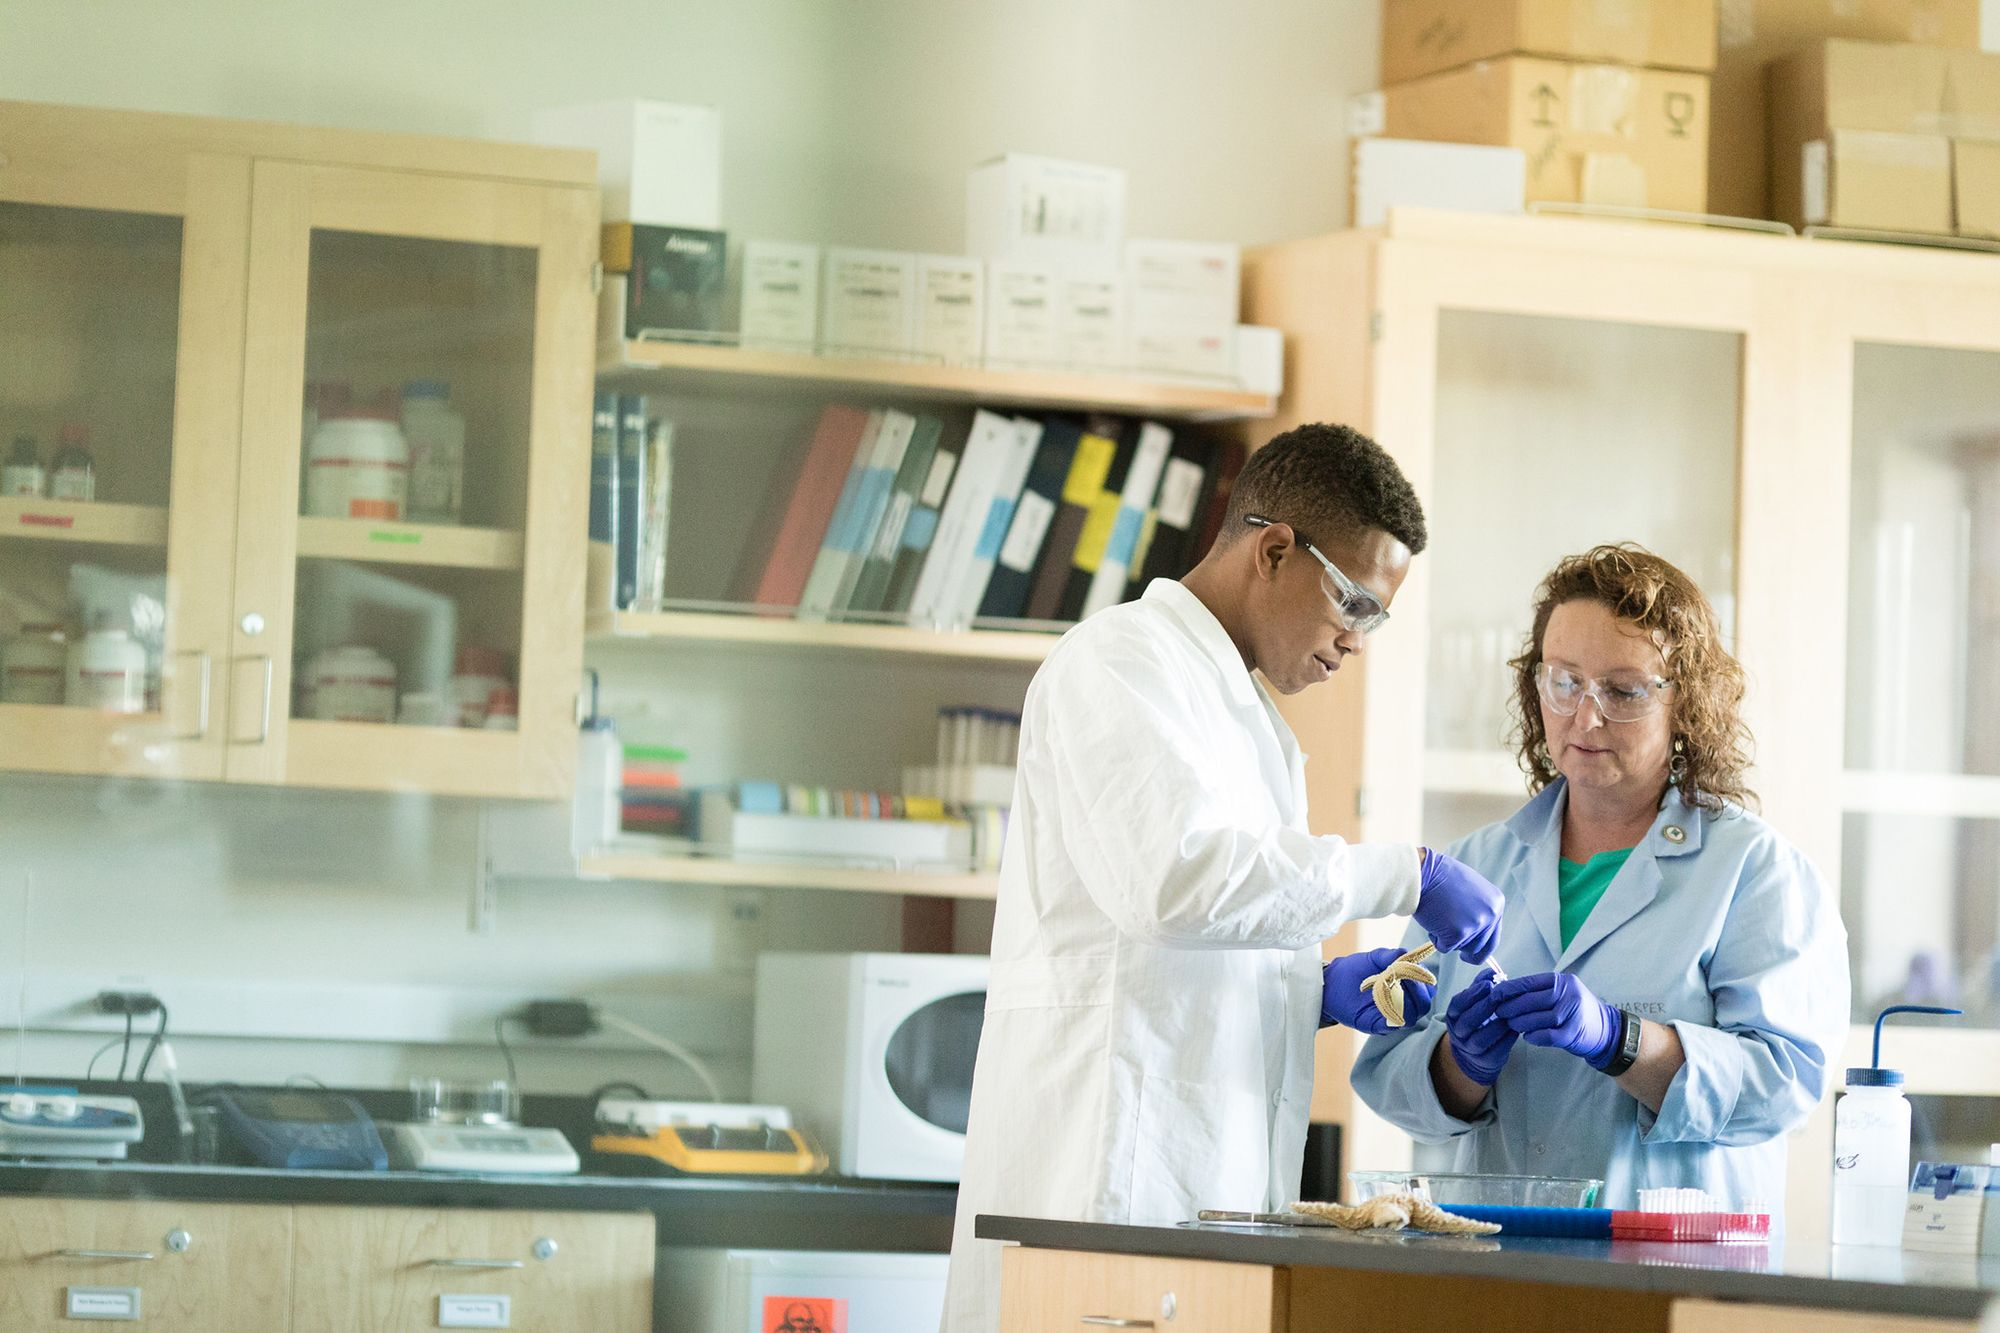 Marine biology professor helping a student in the lab wearing PPE.